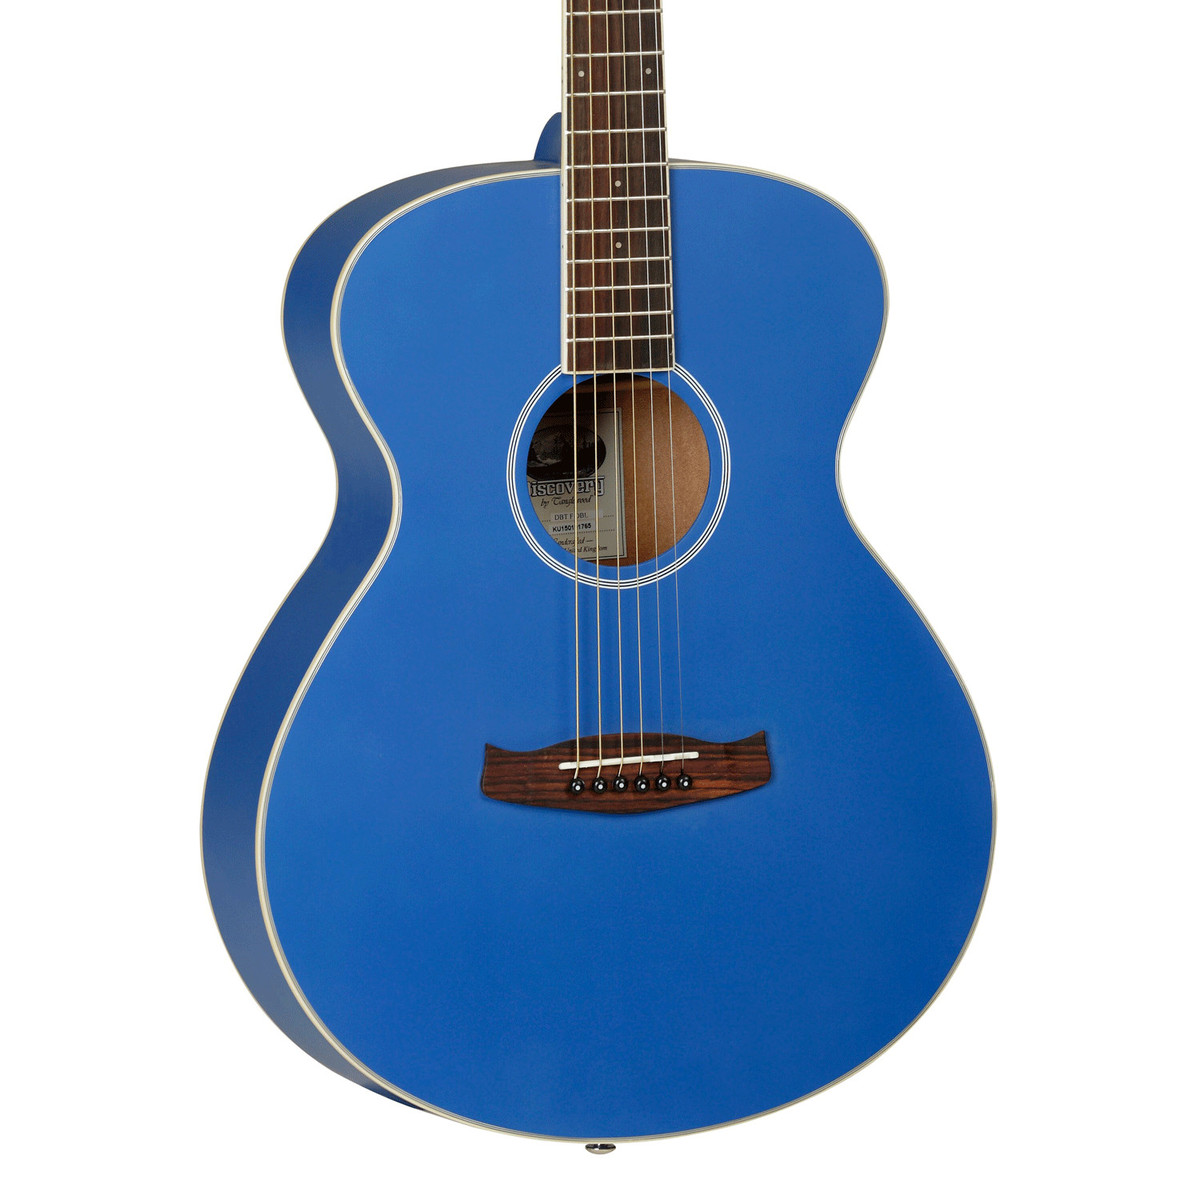 Disc tanglewood dbt f dbl discovery acoustic guitar dark for The tanglewood